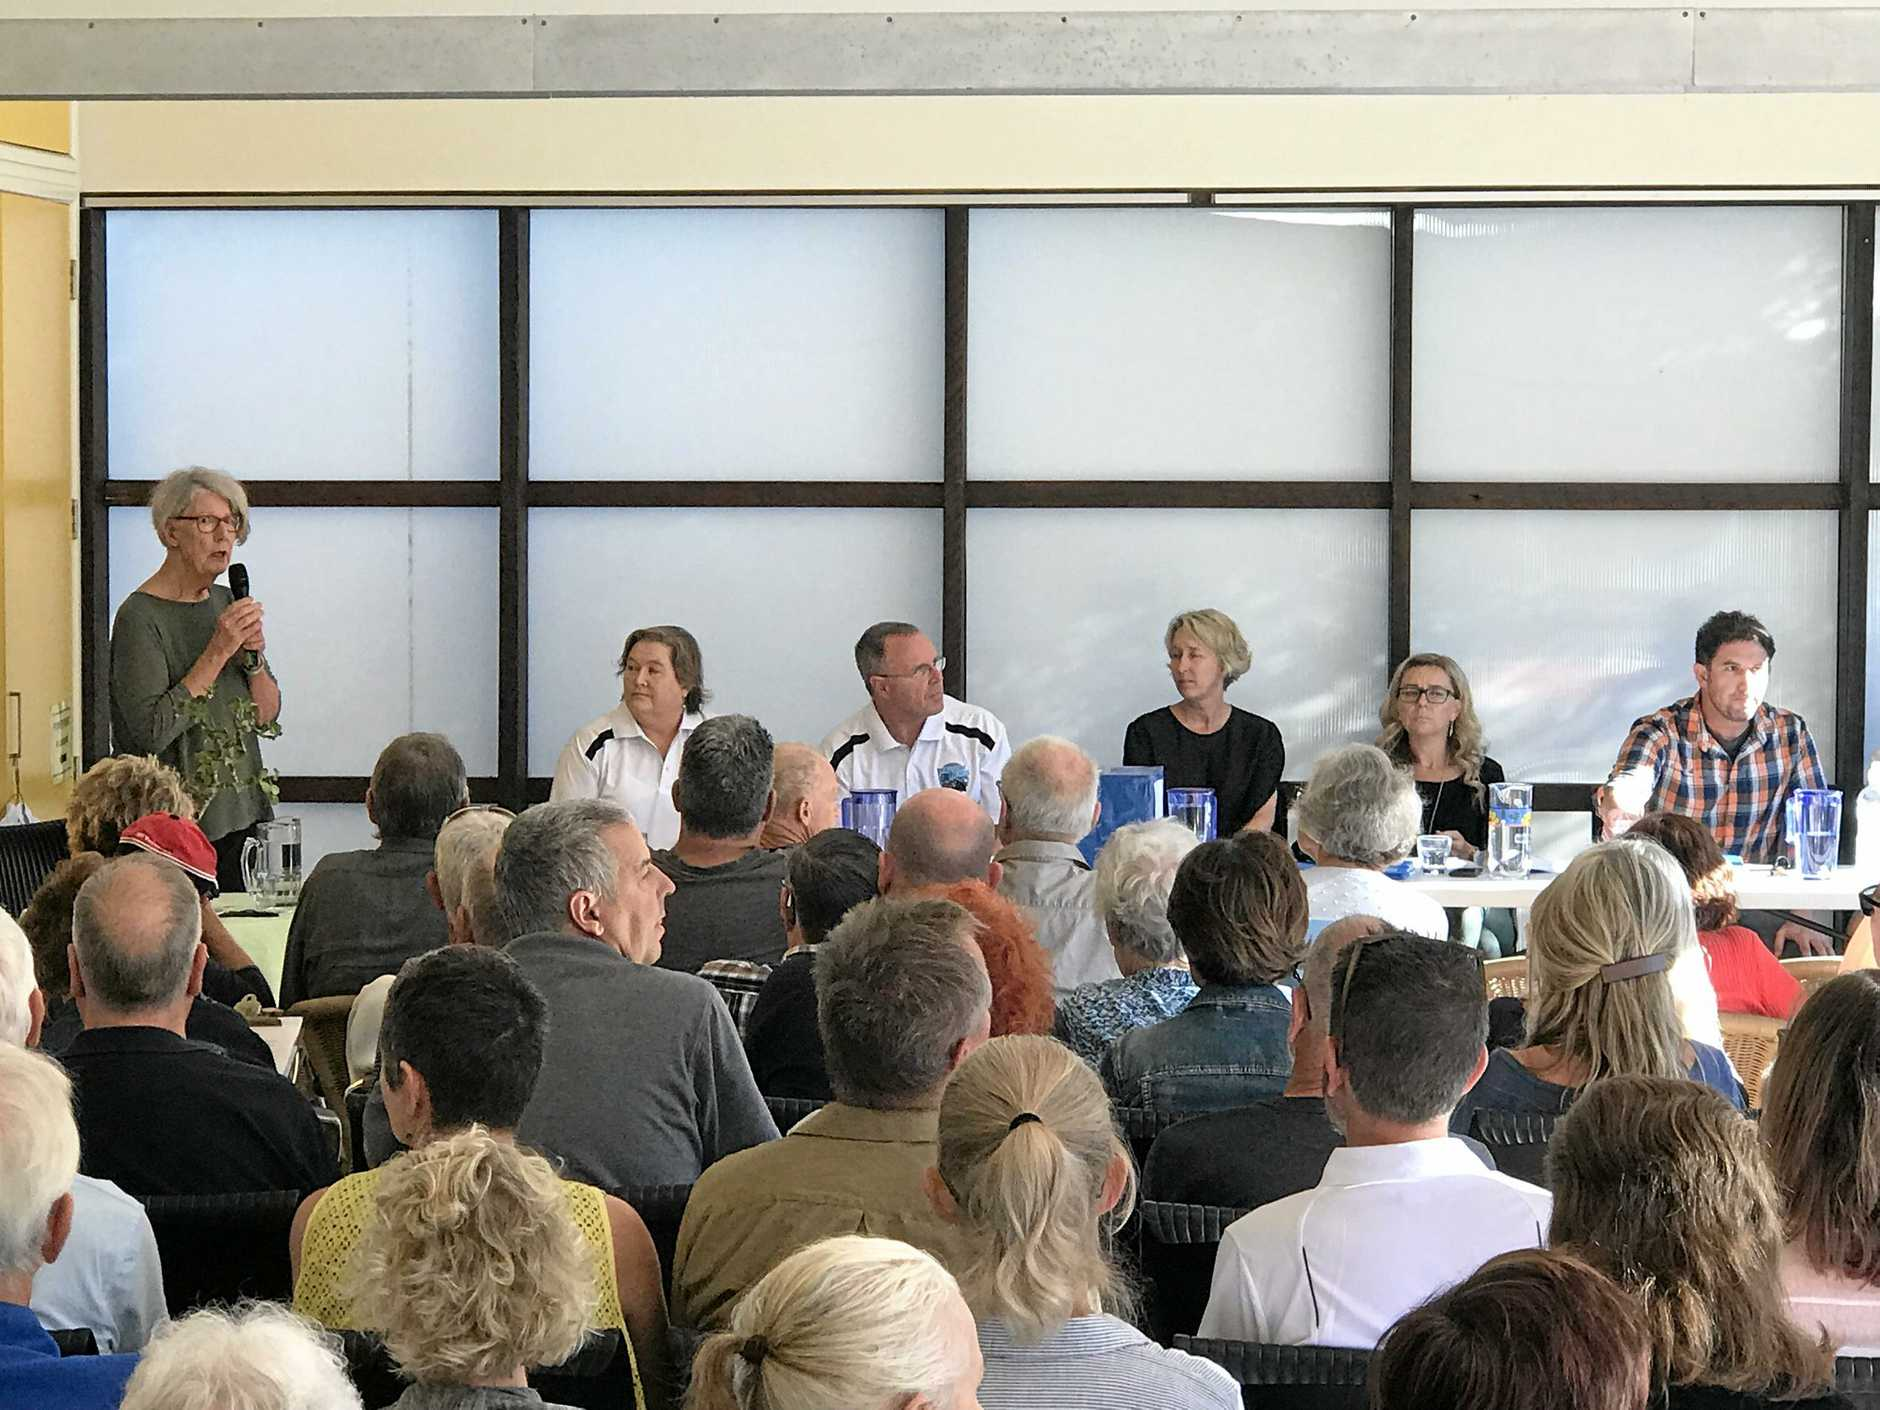 WHAT'S NEXT: Discussing the future of Peregian Beach Surf Club over the weekend.